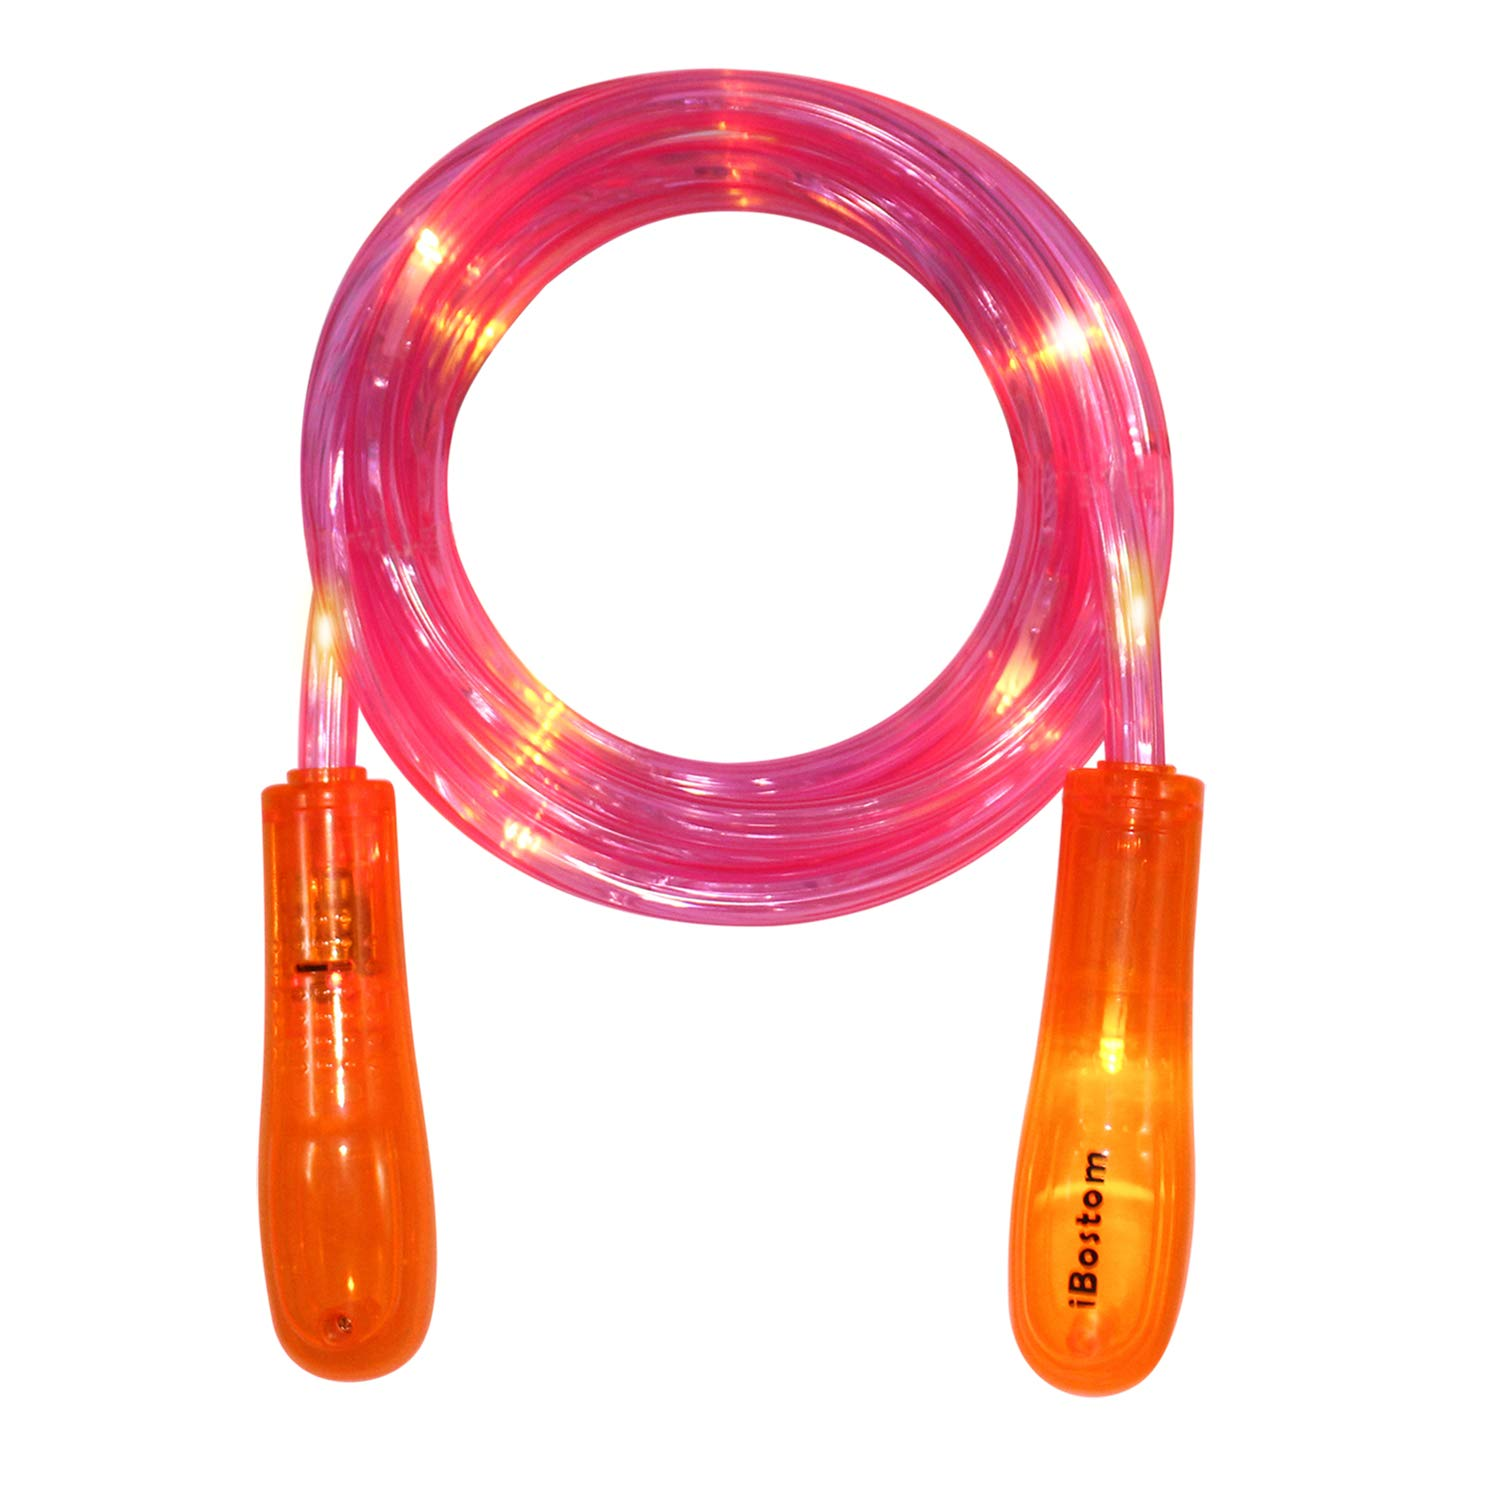 Top 15 Best Jump Rope for Kids Reviews in 2020 12